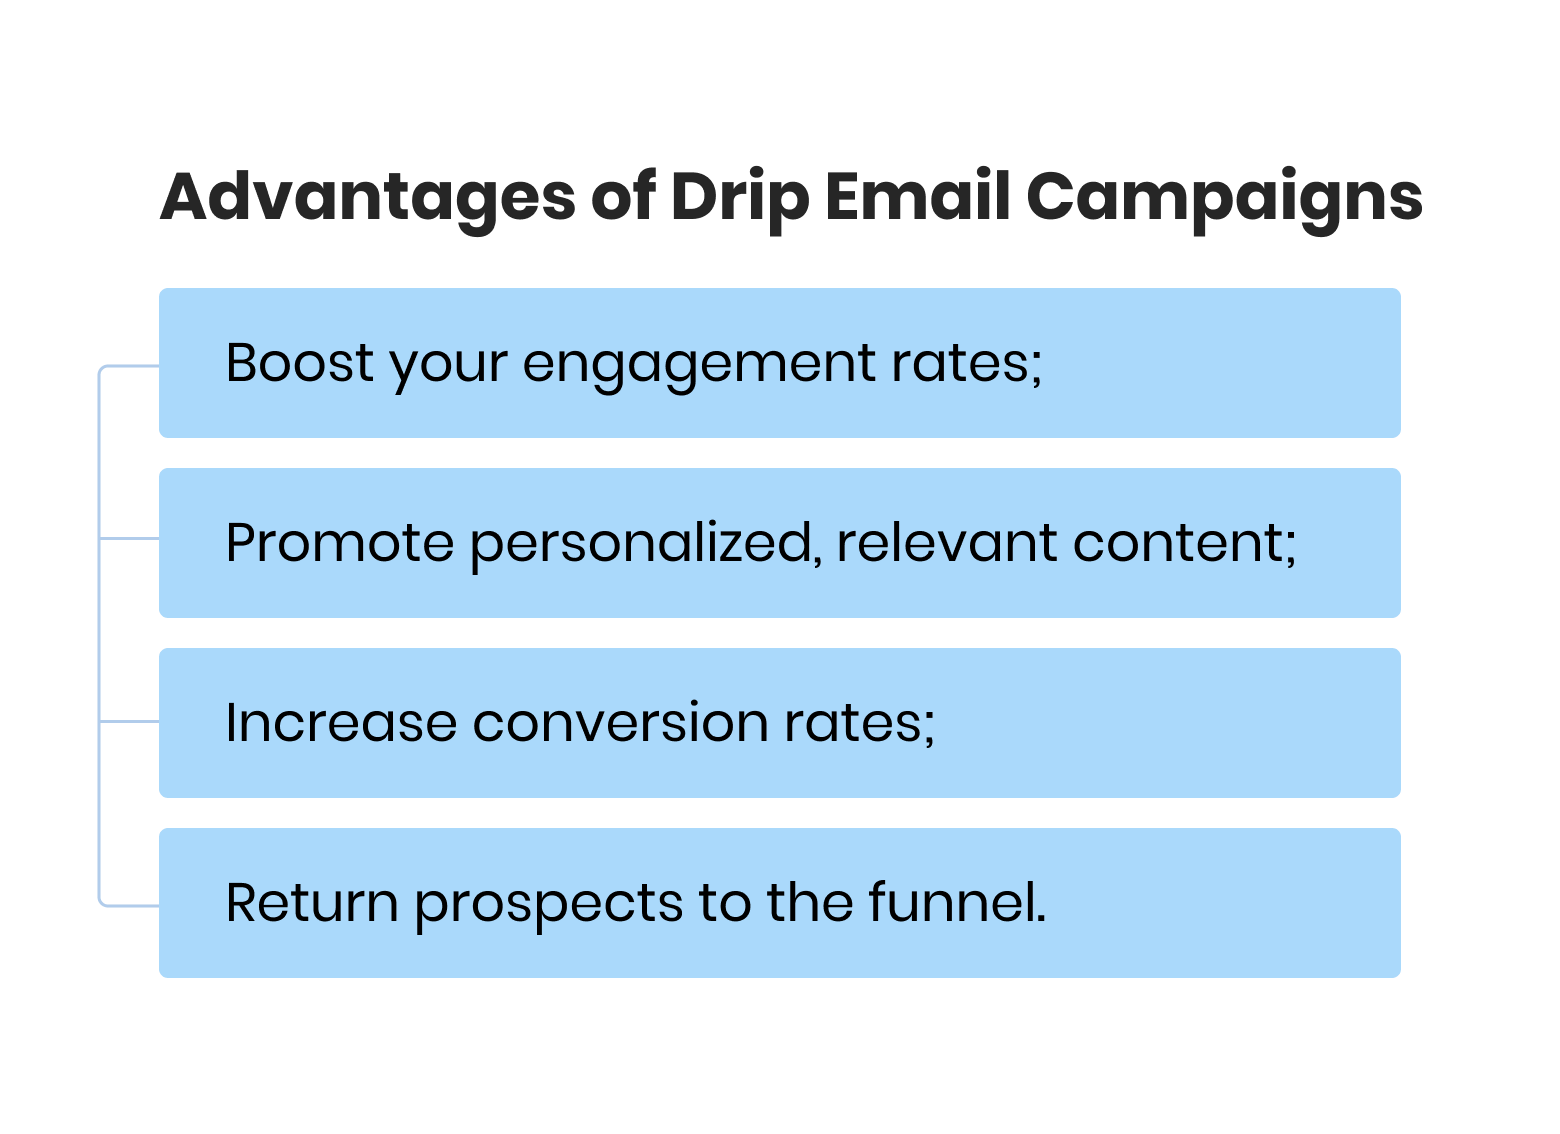 Advantages of Drip Email Campaigns